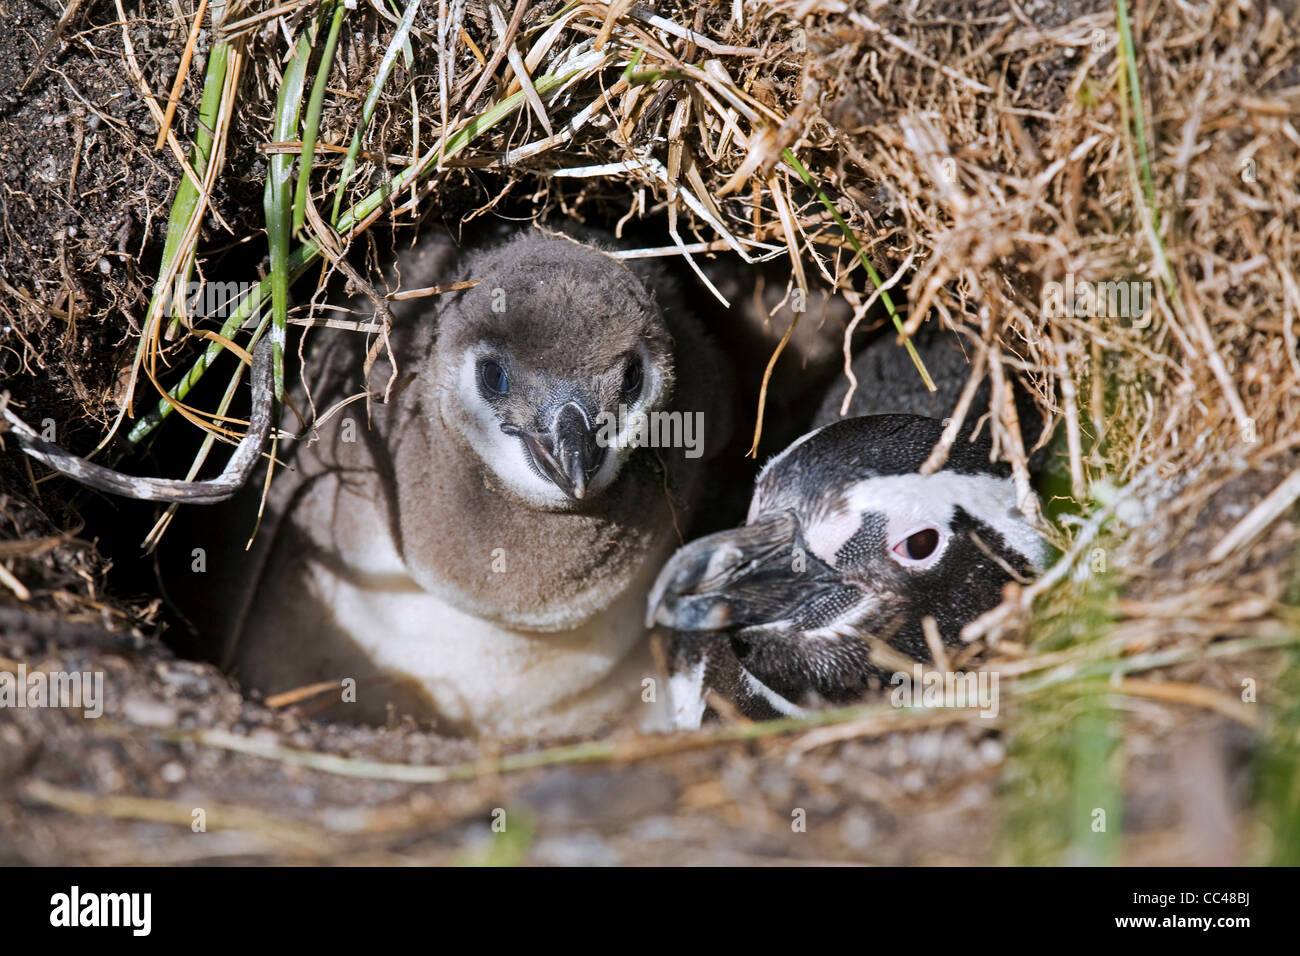 Magellanic Penguin (Spheniscus magellanicus) with chick in burrow, Isla Yecapasela at Estancia Harberton, Ushuaia, - Stock Image